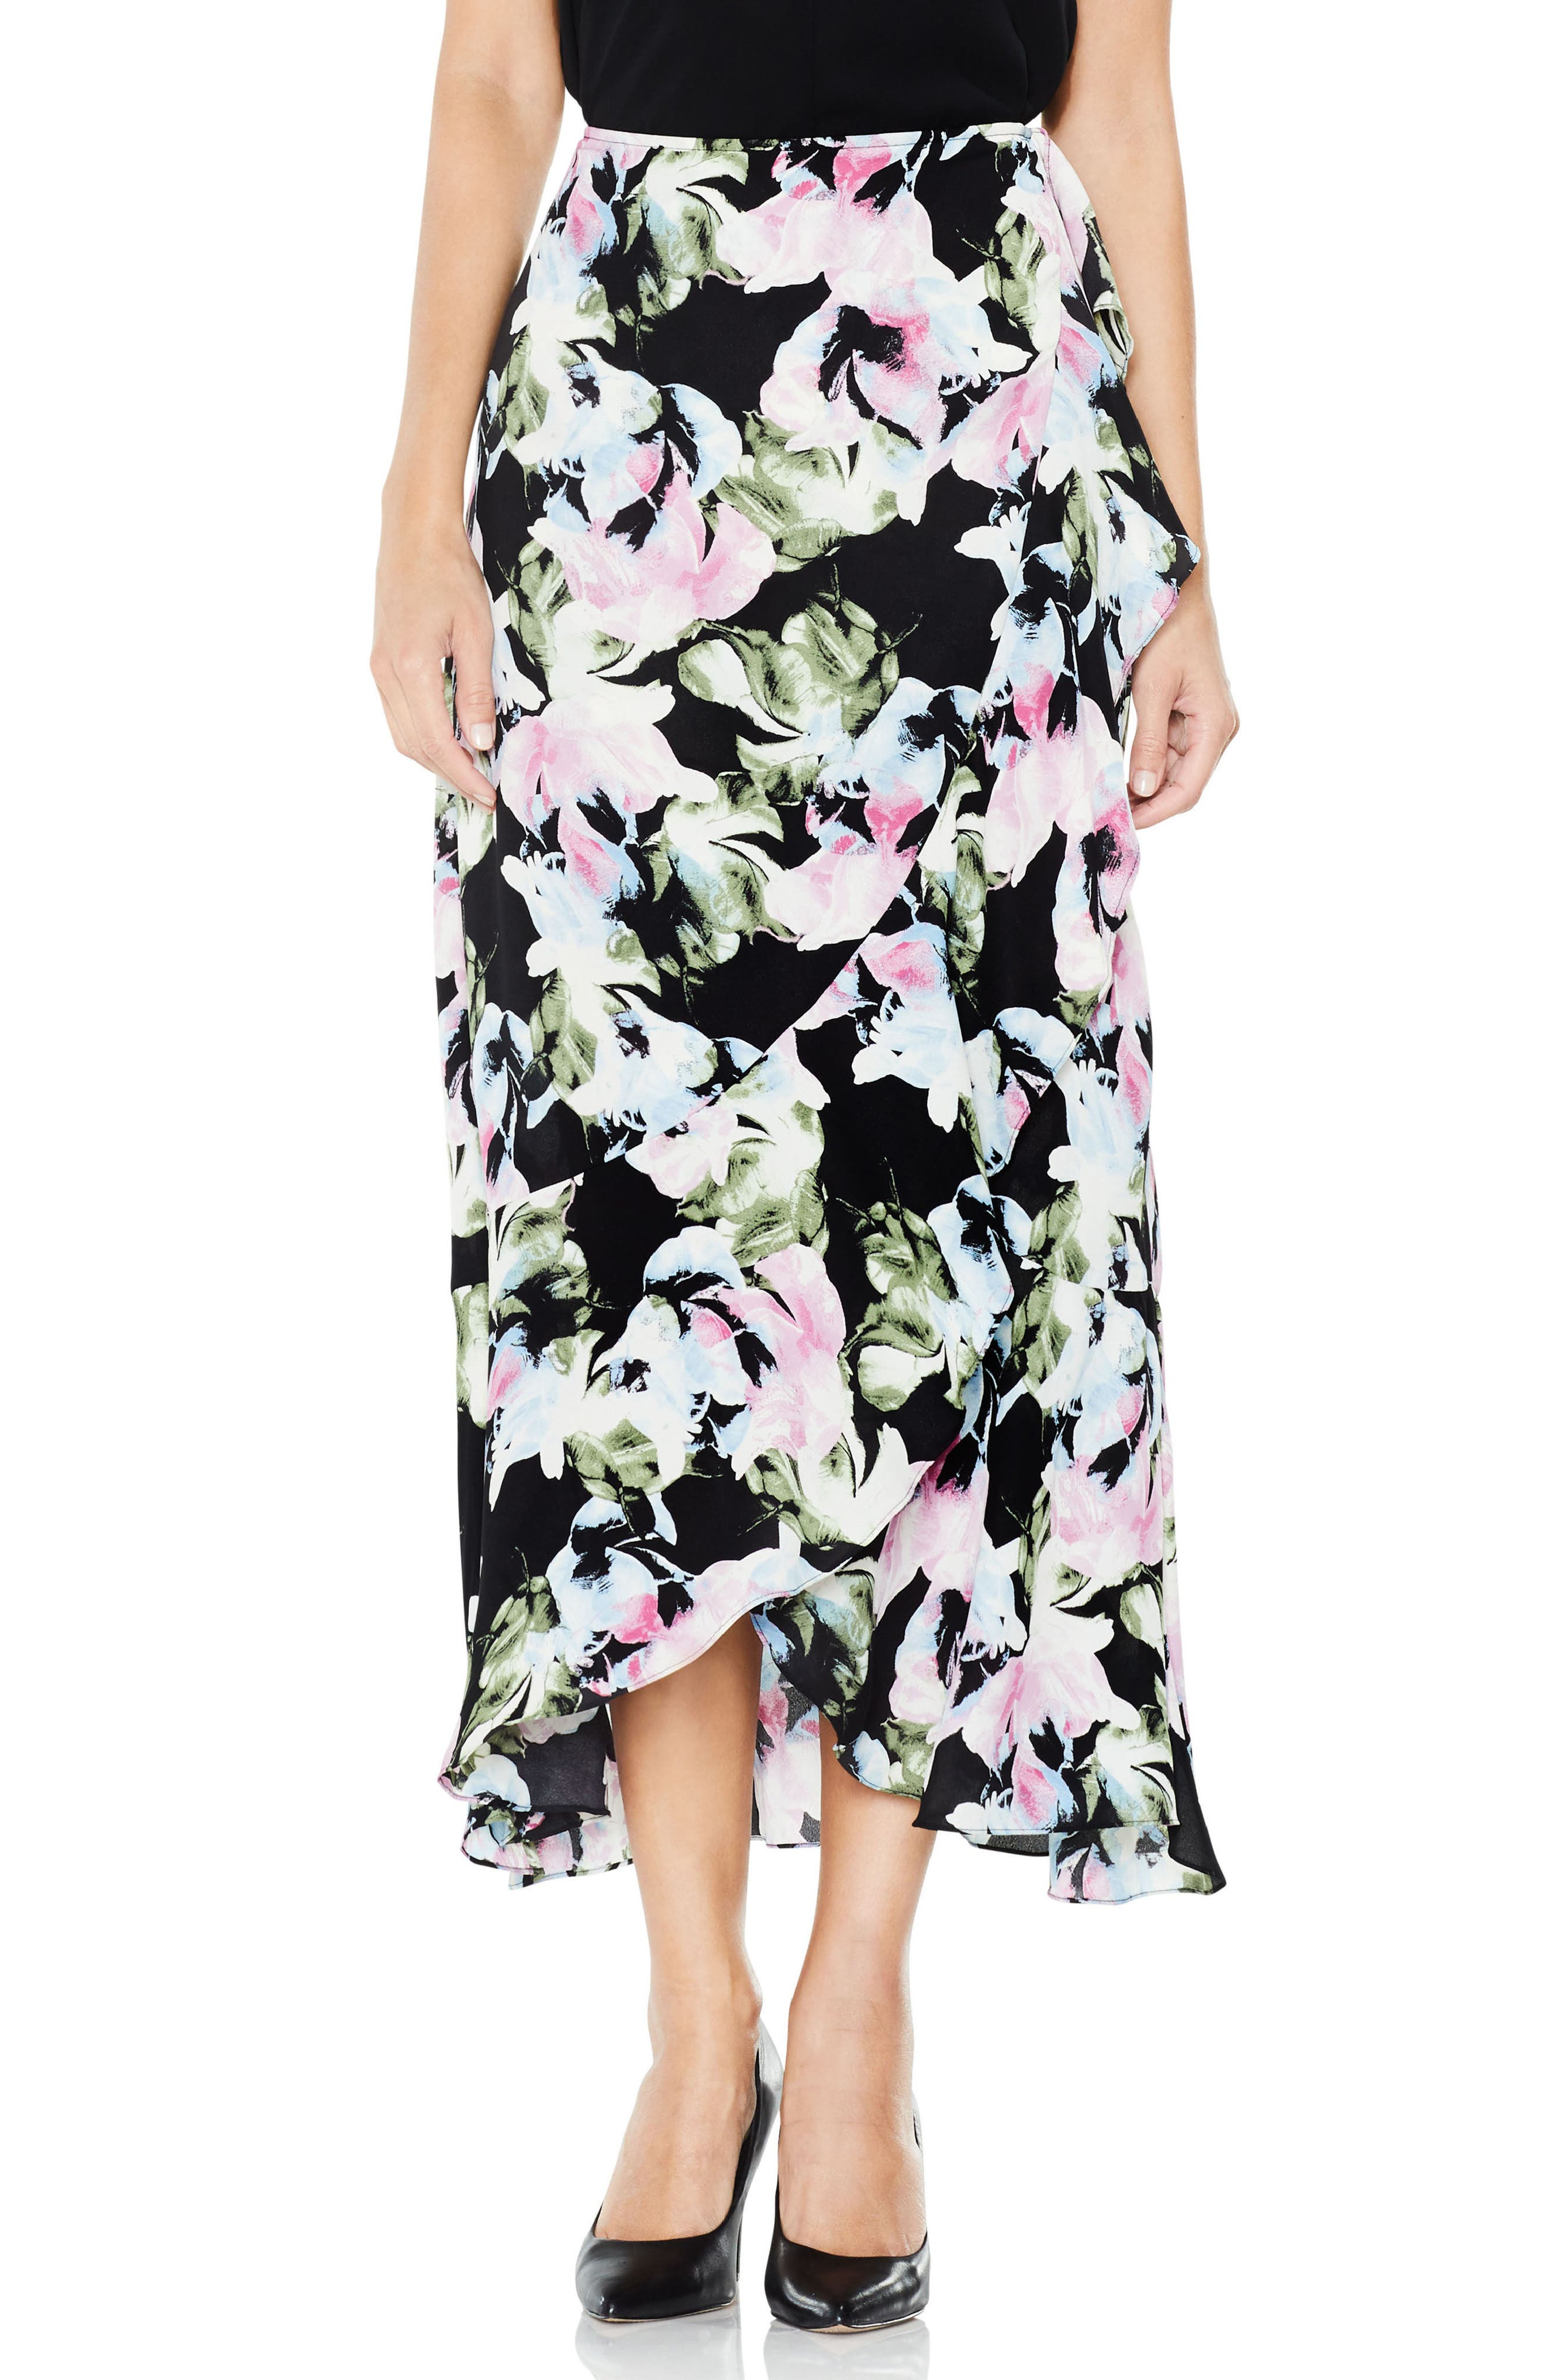 Vince Camuto Glacier Floral Ruffle Skirt